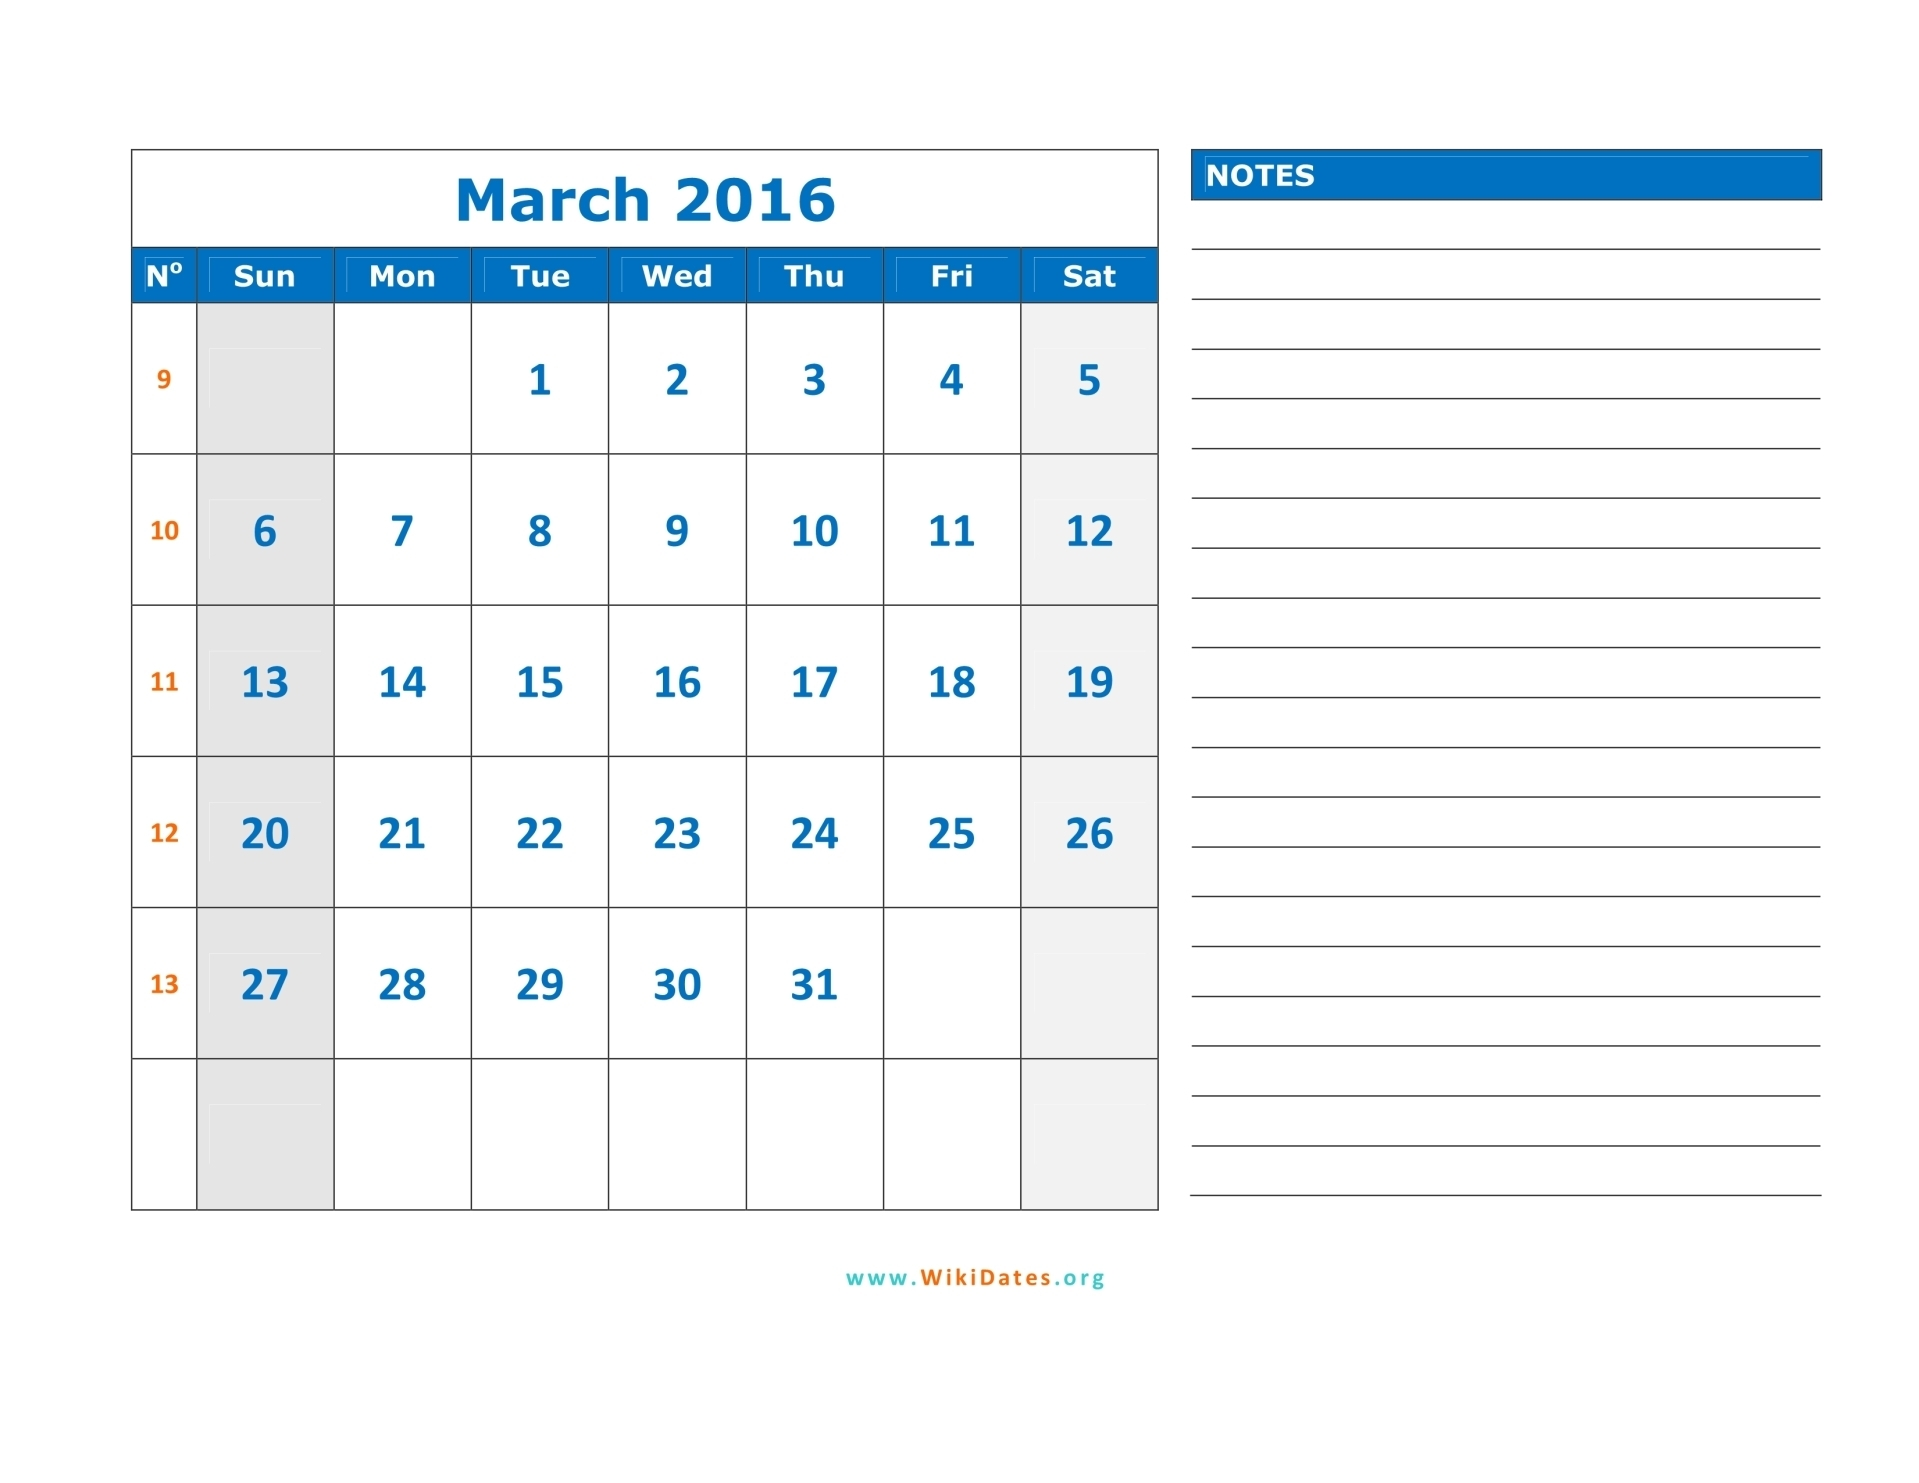 March 2016 Calendar | WikiDates.org